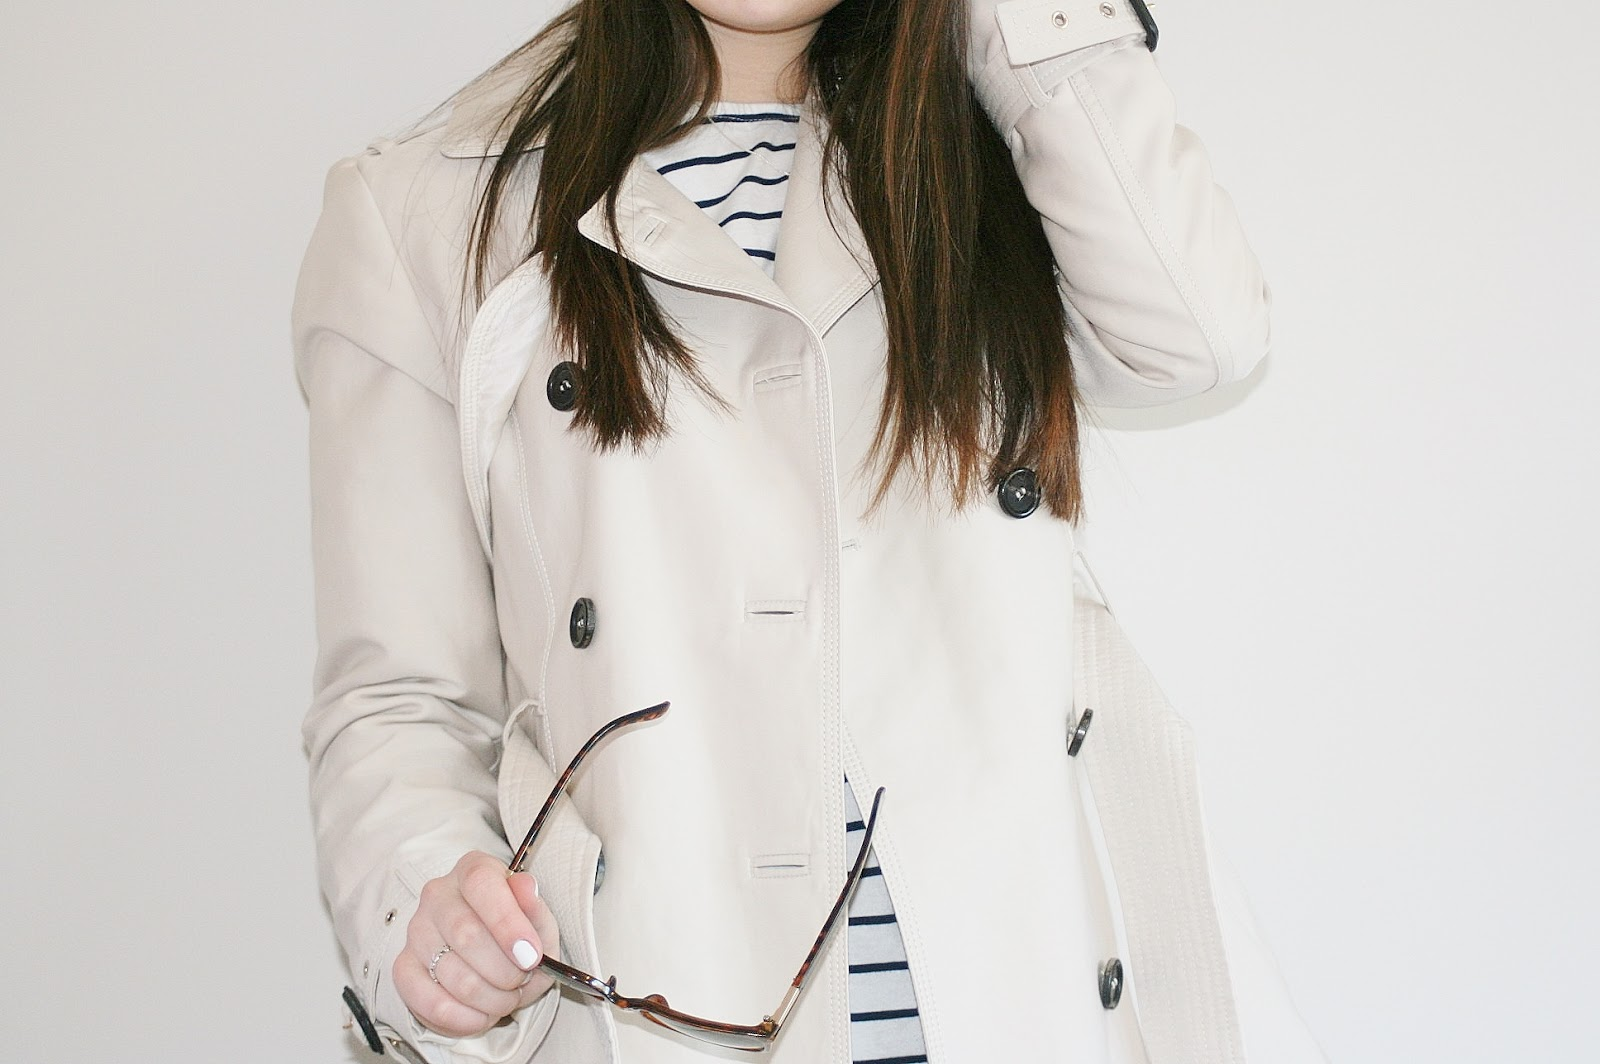 Katherine Penney Chic Fashion Style Outfit Stripes Trench Coat Sunglasses Spring Zara